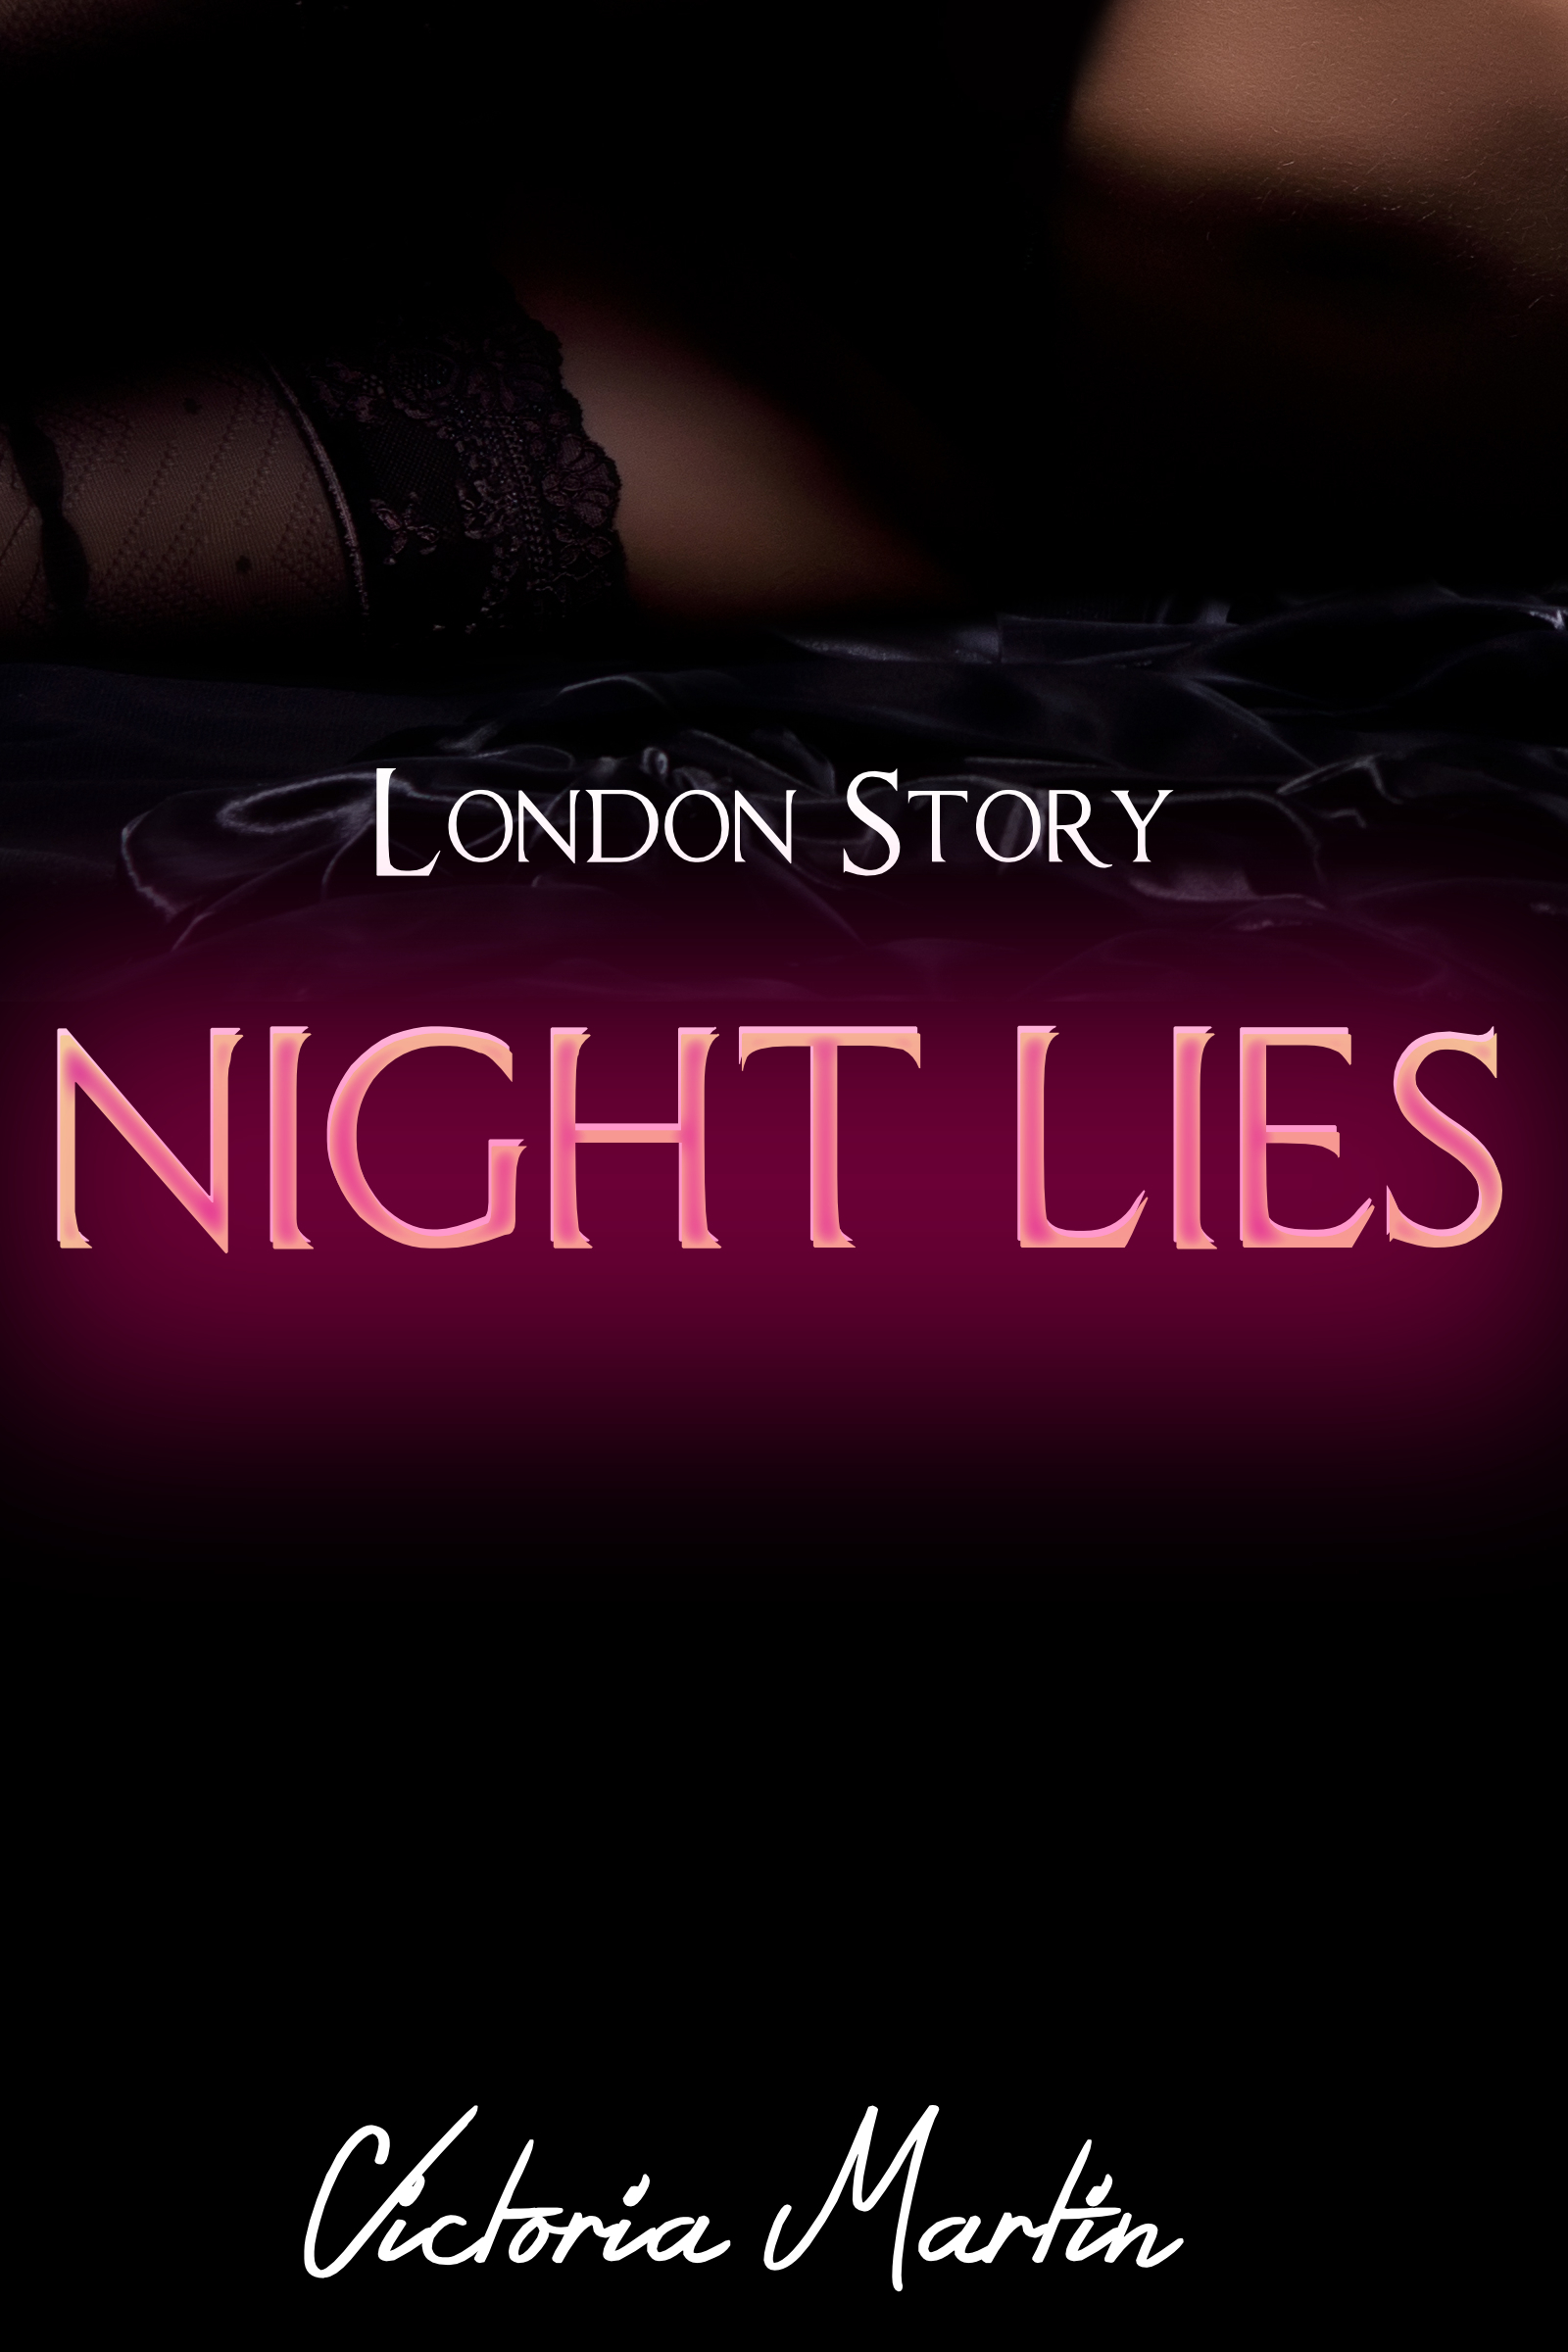 NightLies: London Story Victoria Martin